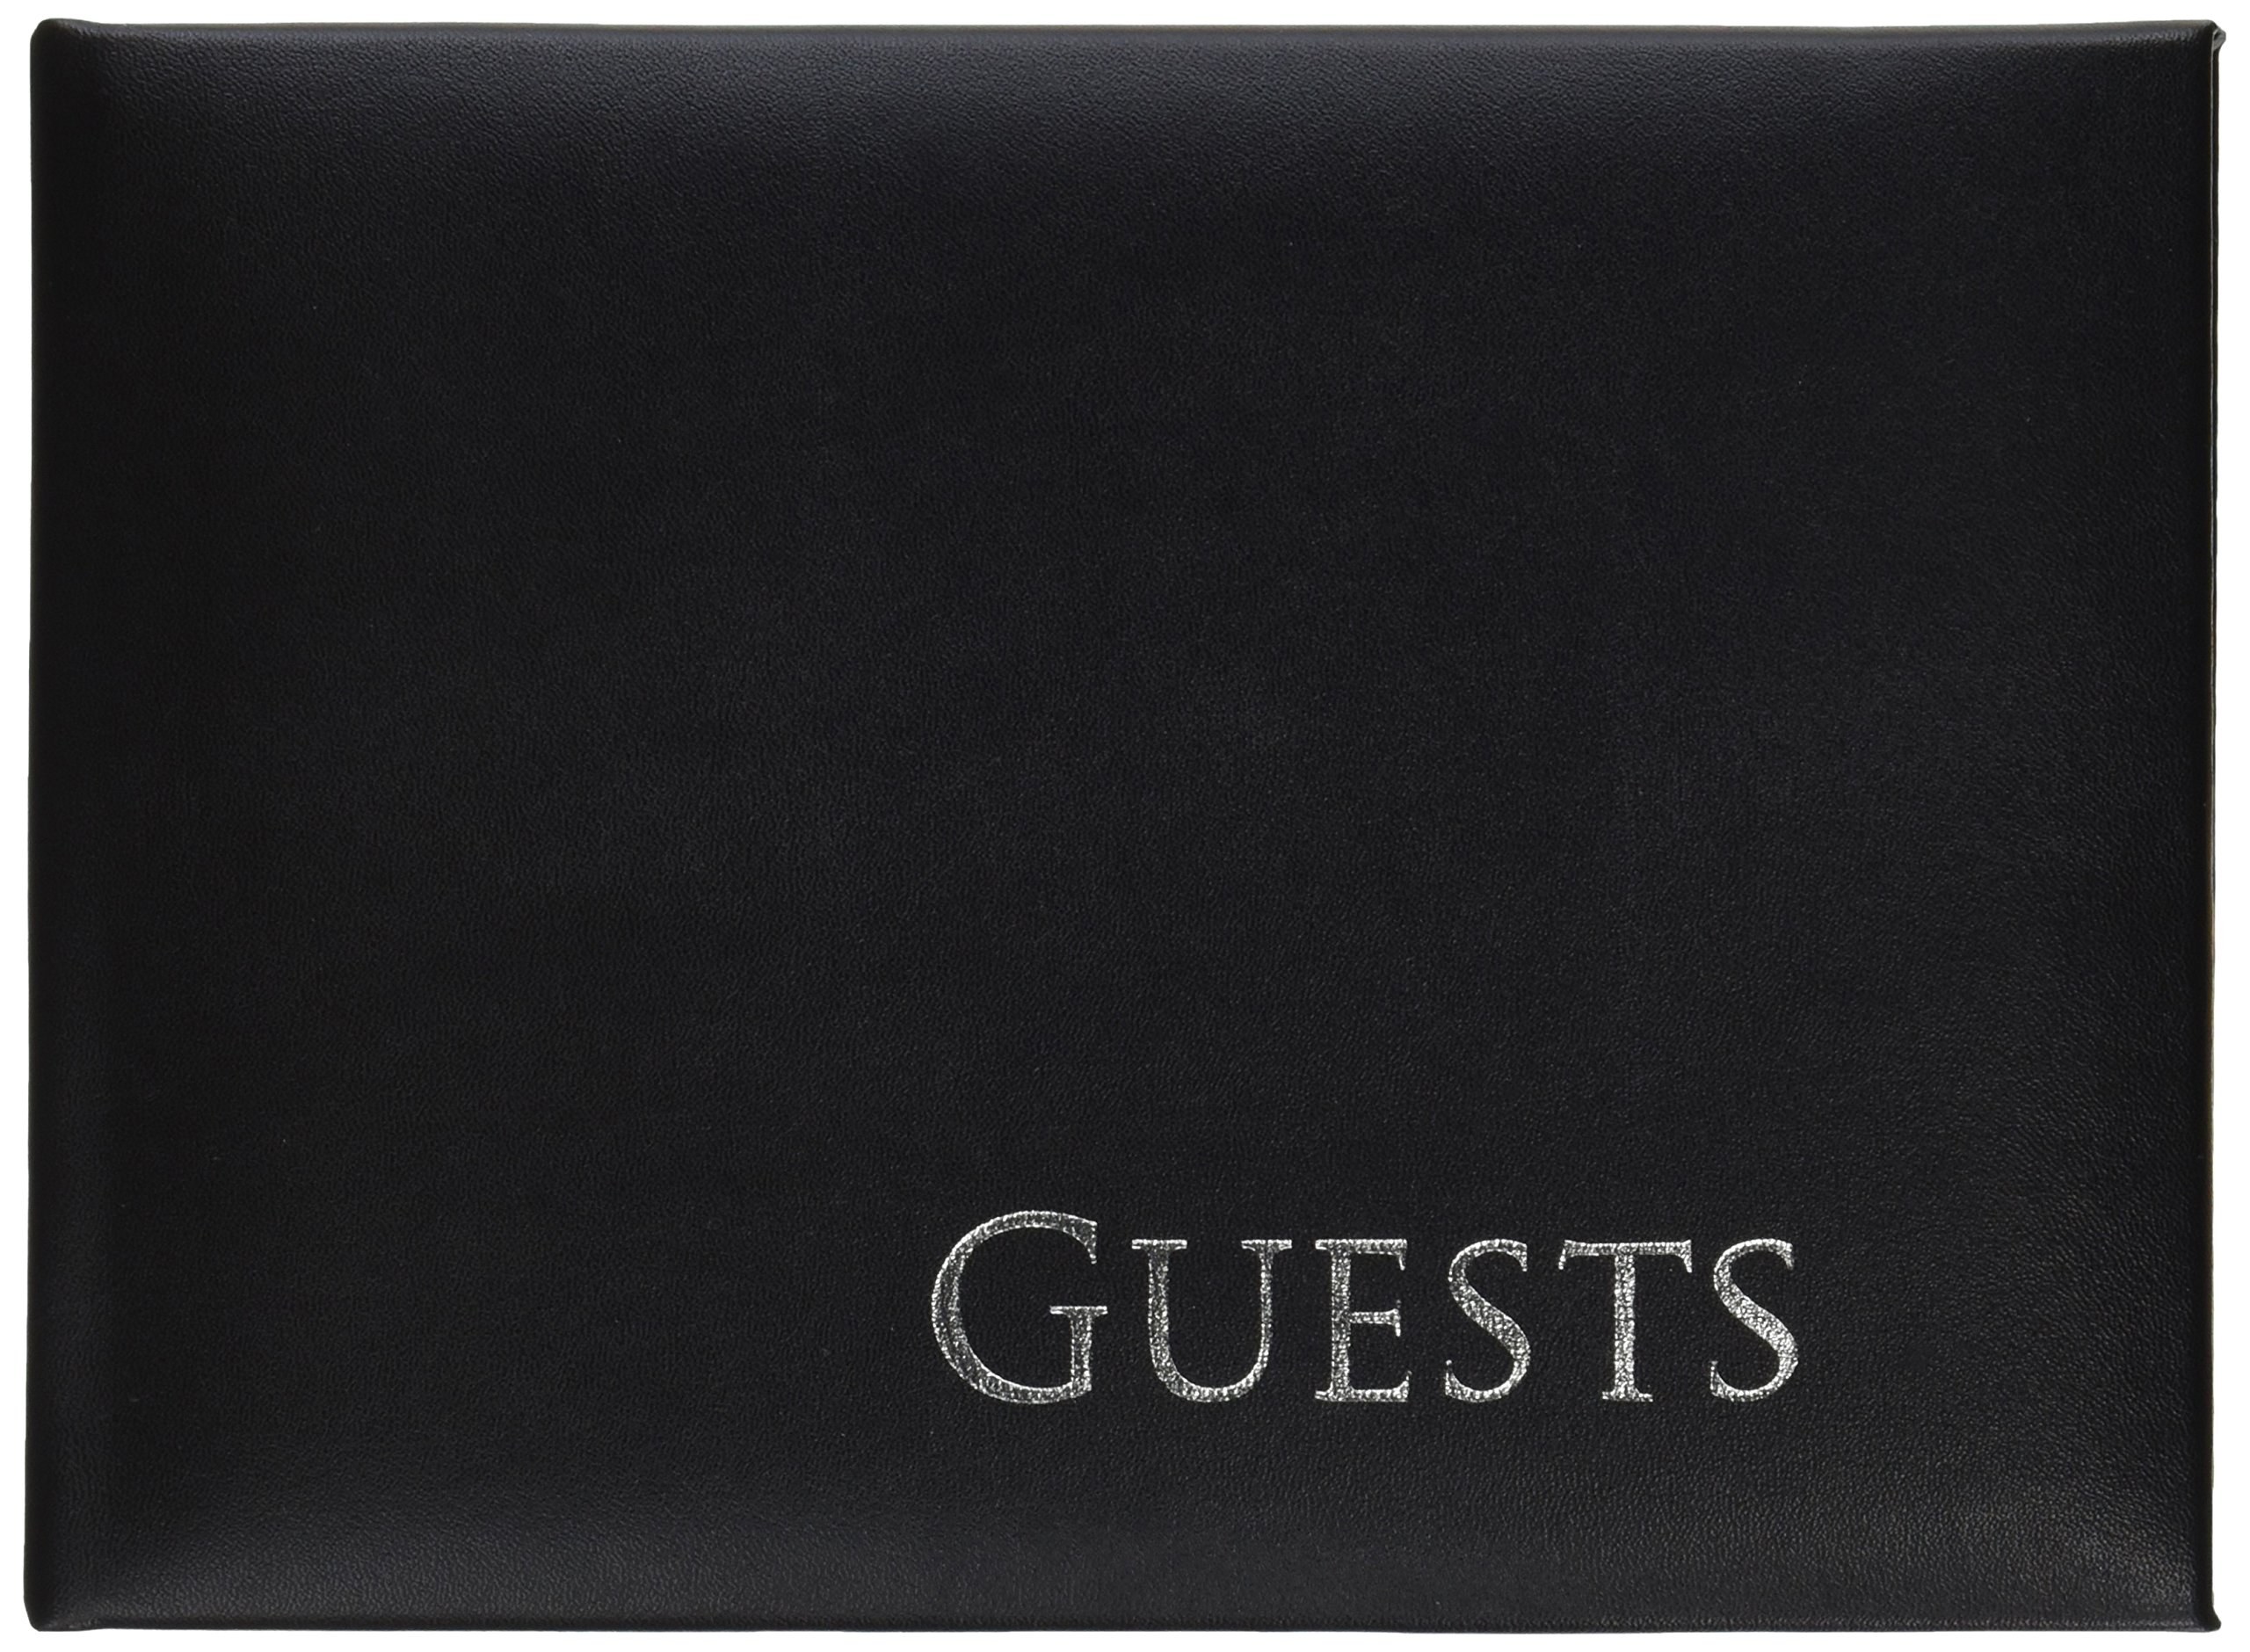 Darice 35930 Embossed Guest Book, 8.5 by 6.25-Inch, Black with Silver Writing